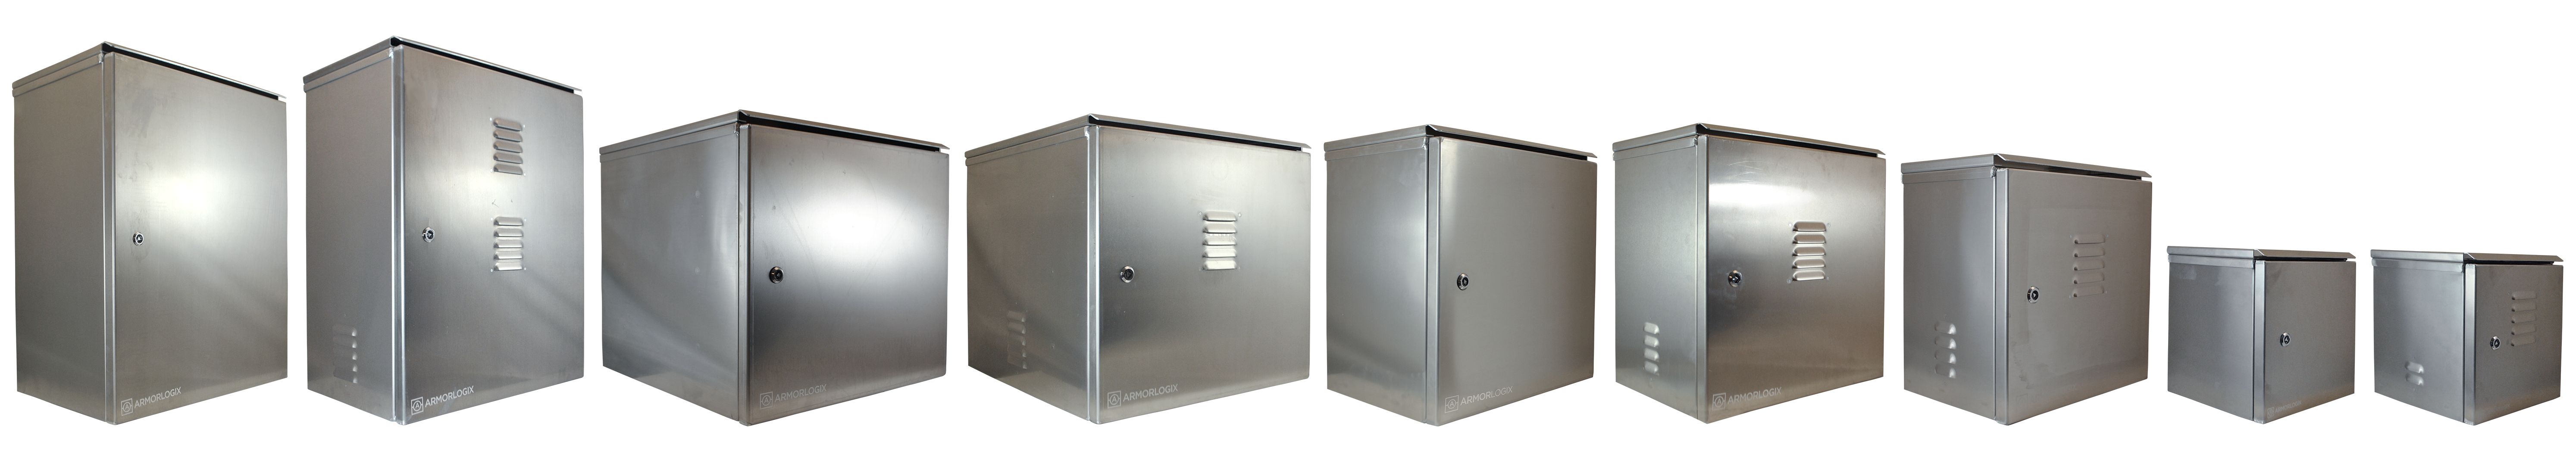 ArmorLogix marine grade aluminum enclosure product line up